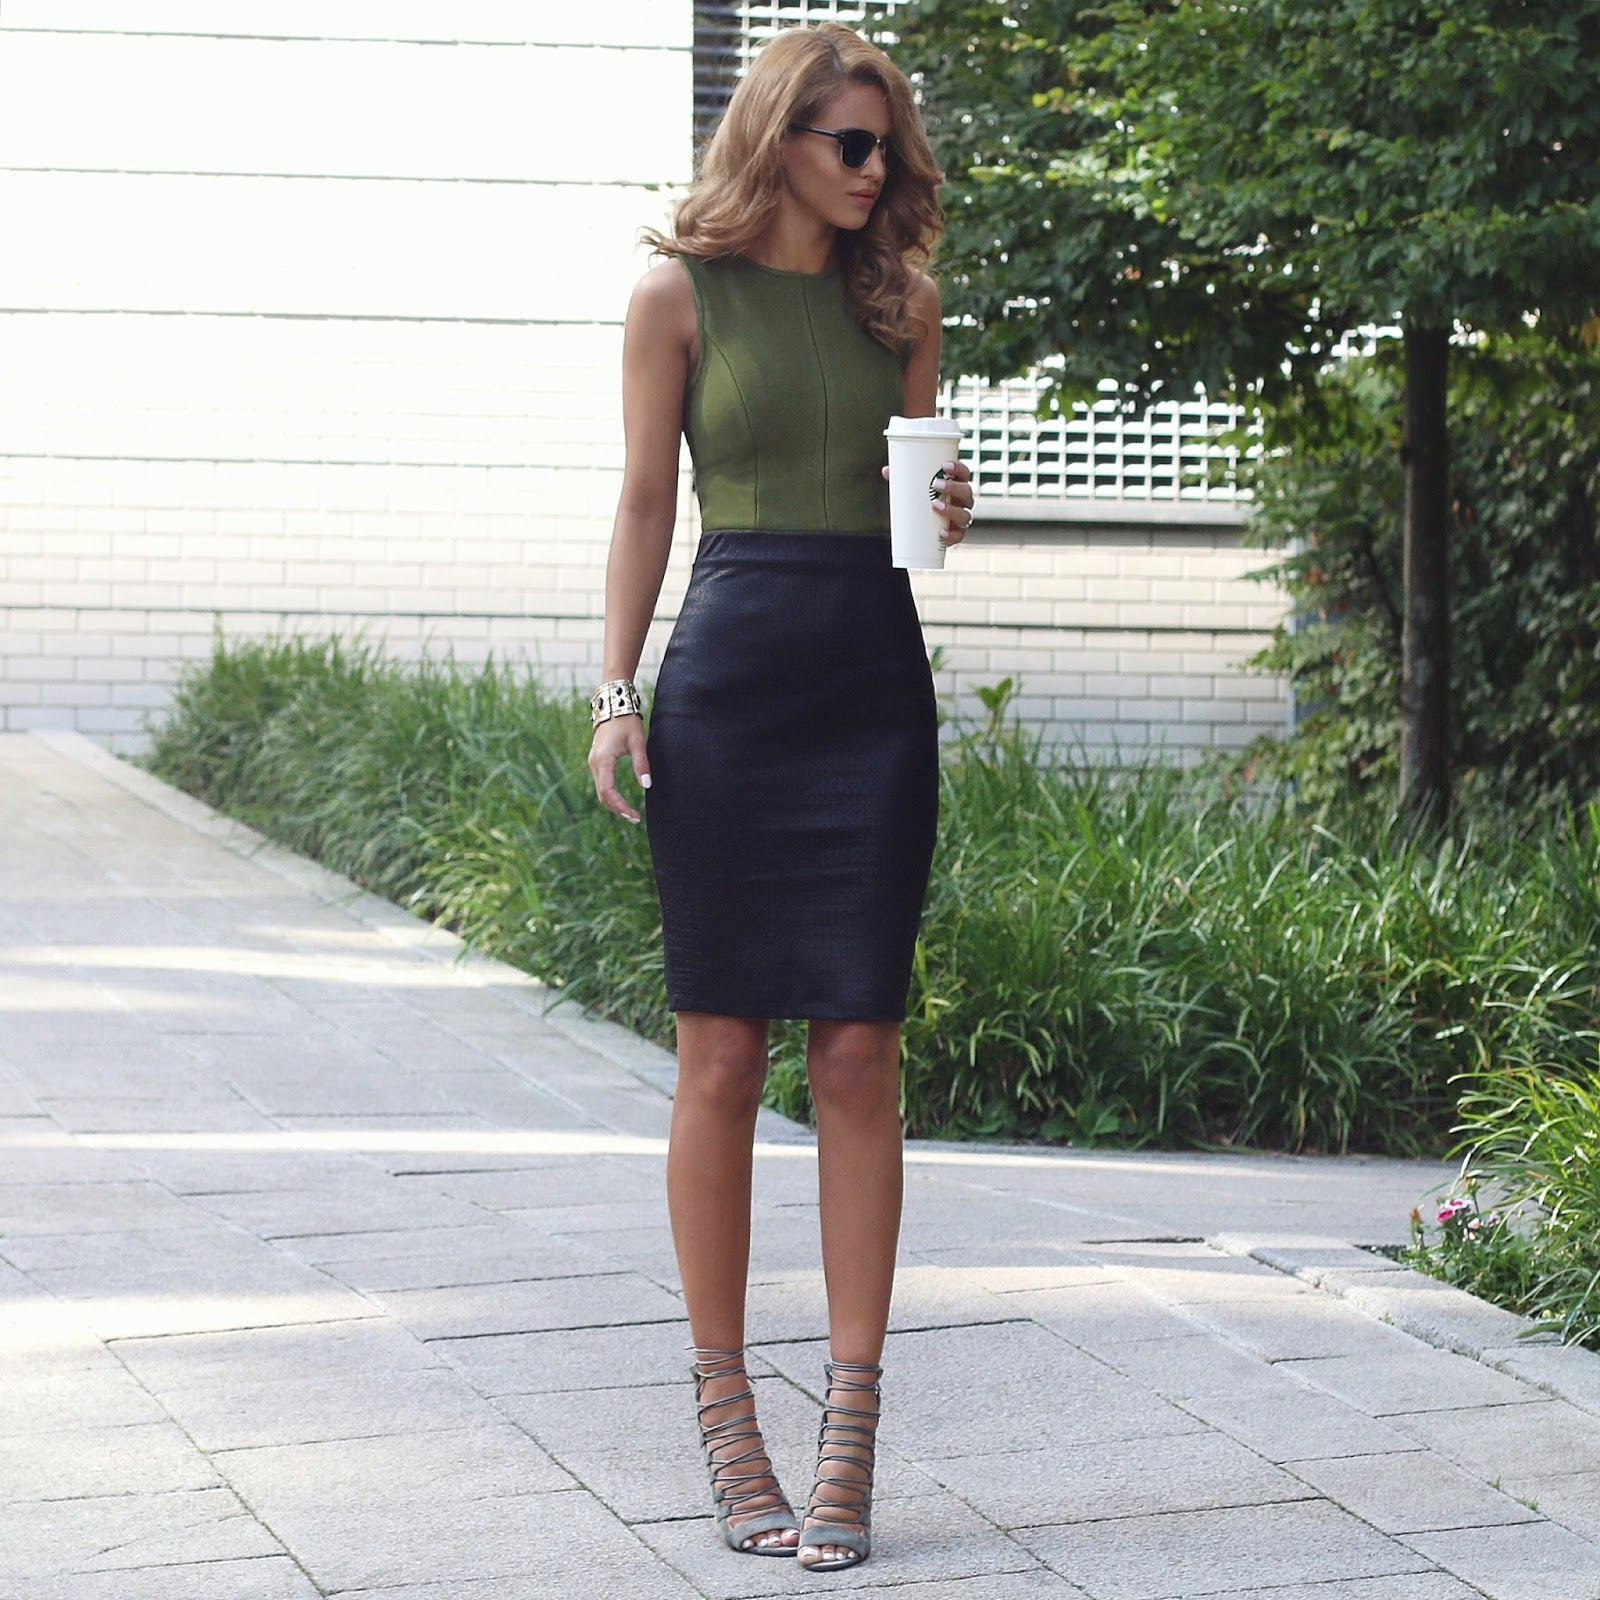 Nada Adelle keeps it simplistic in this spring outfit consisting of a leather midi skirt and a sleeveless khaki vest with matching heels. A skirt like this is inherently figure hugging and is therefore a great way to show off your curves! Top: My Bandage Dress, Skirt: Loft, Heels: Public Desire.